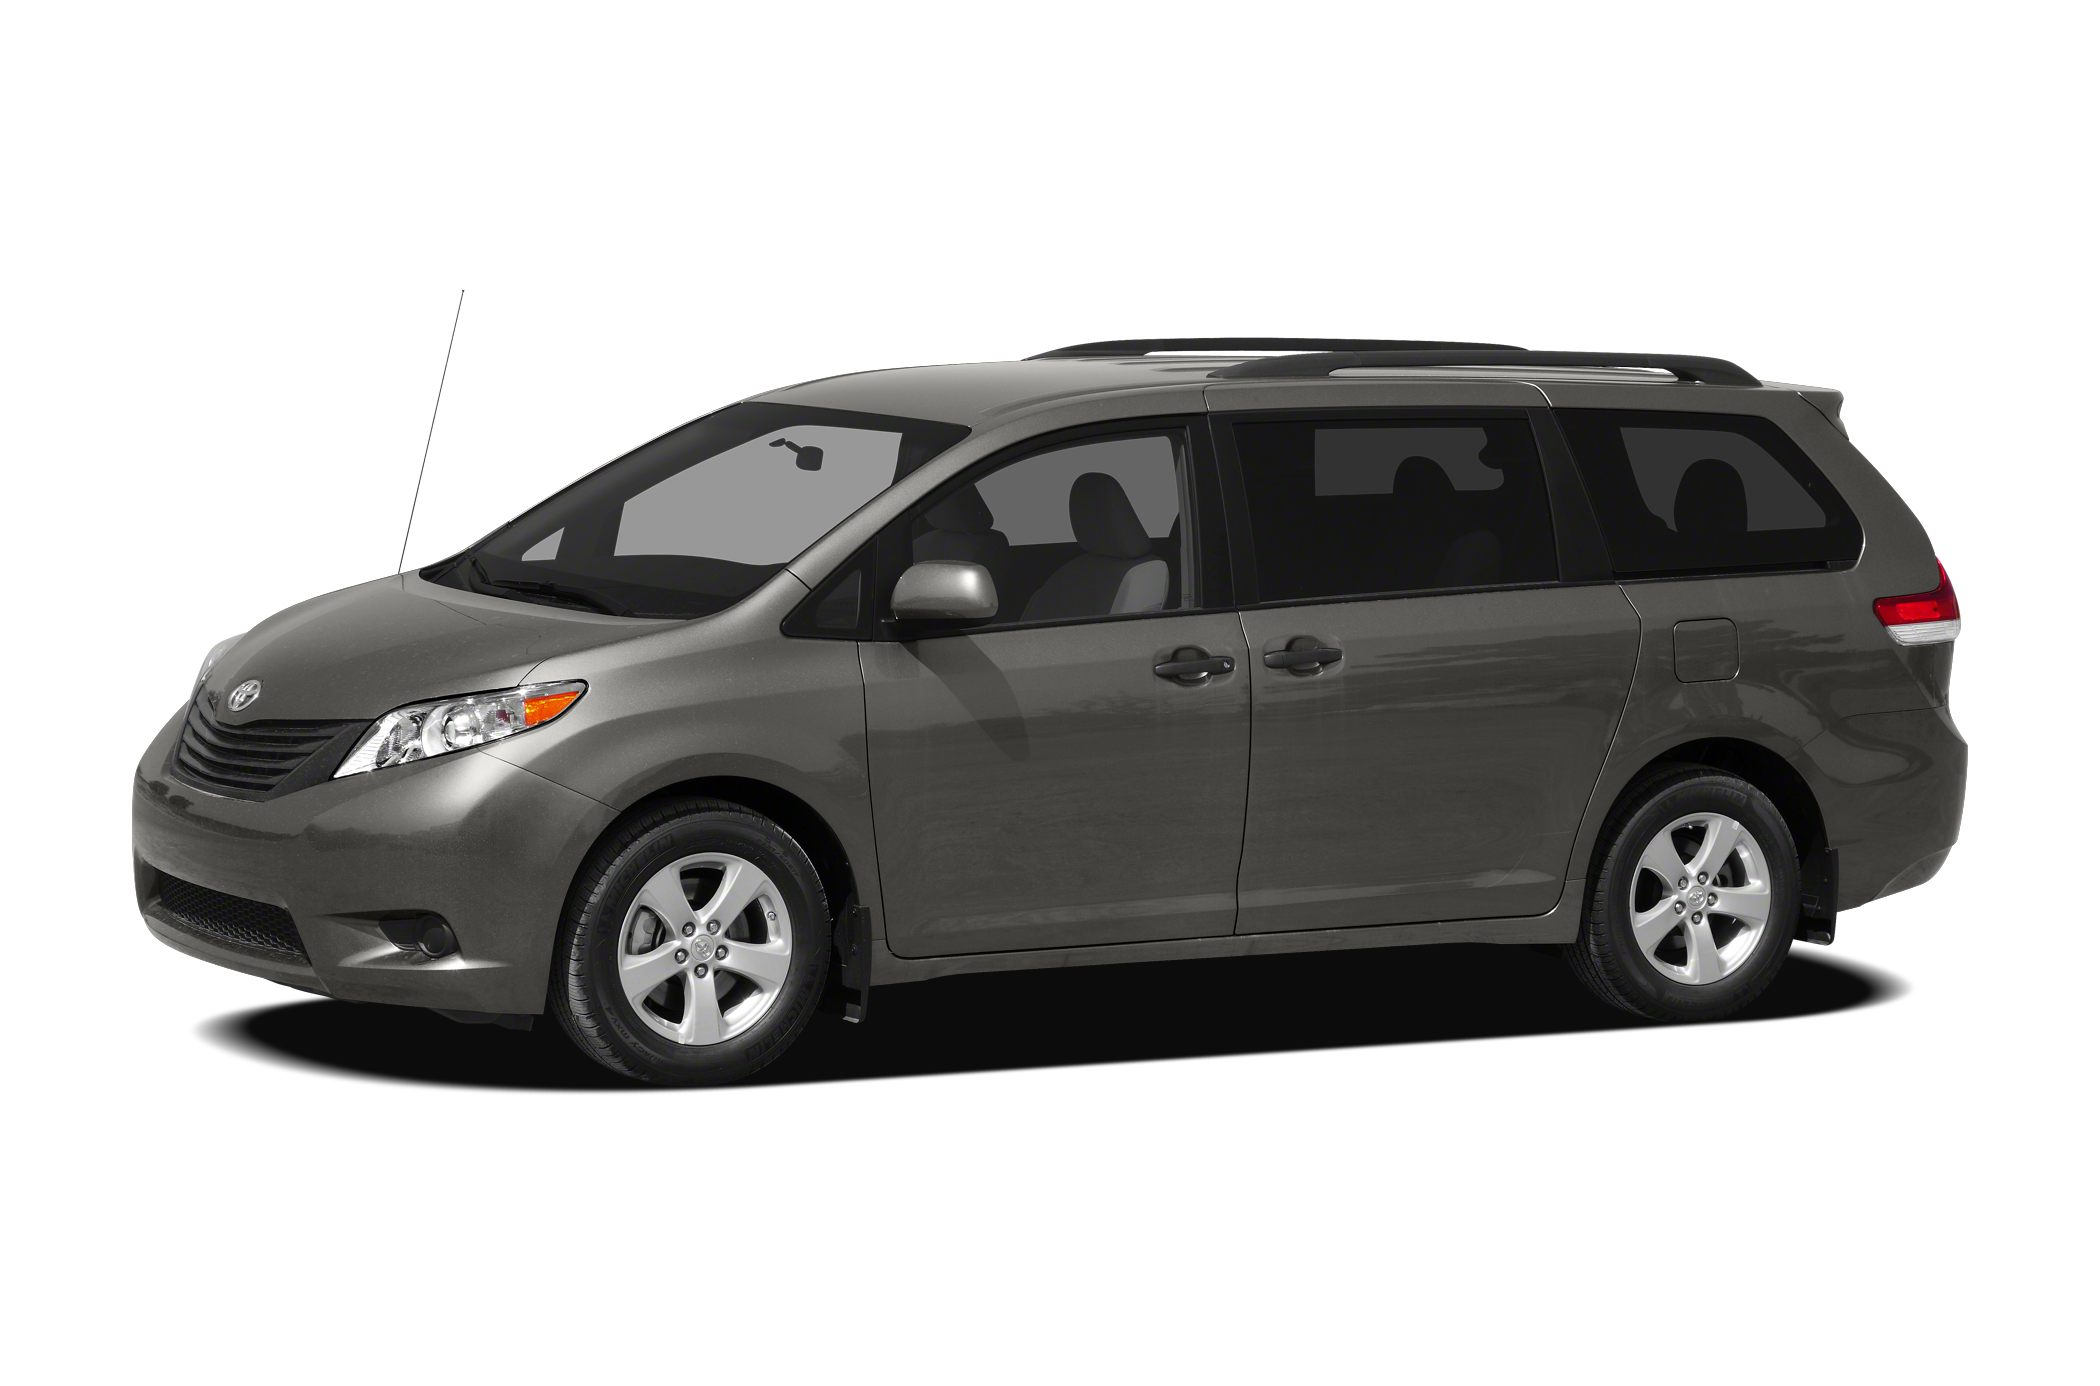 2011 Toyota Sienna Limited Minivan for sale in Macomb for $24,995 with 79,687 miles.